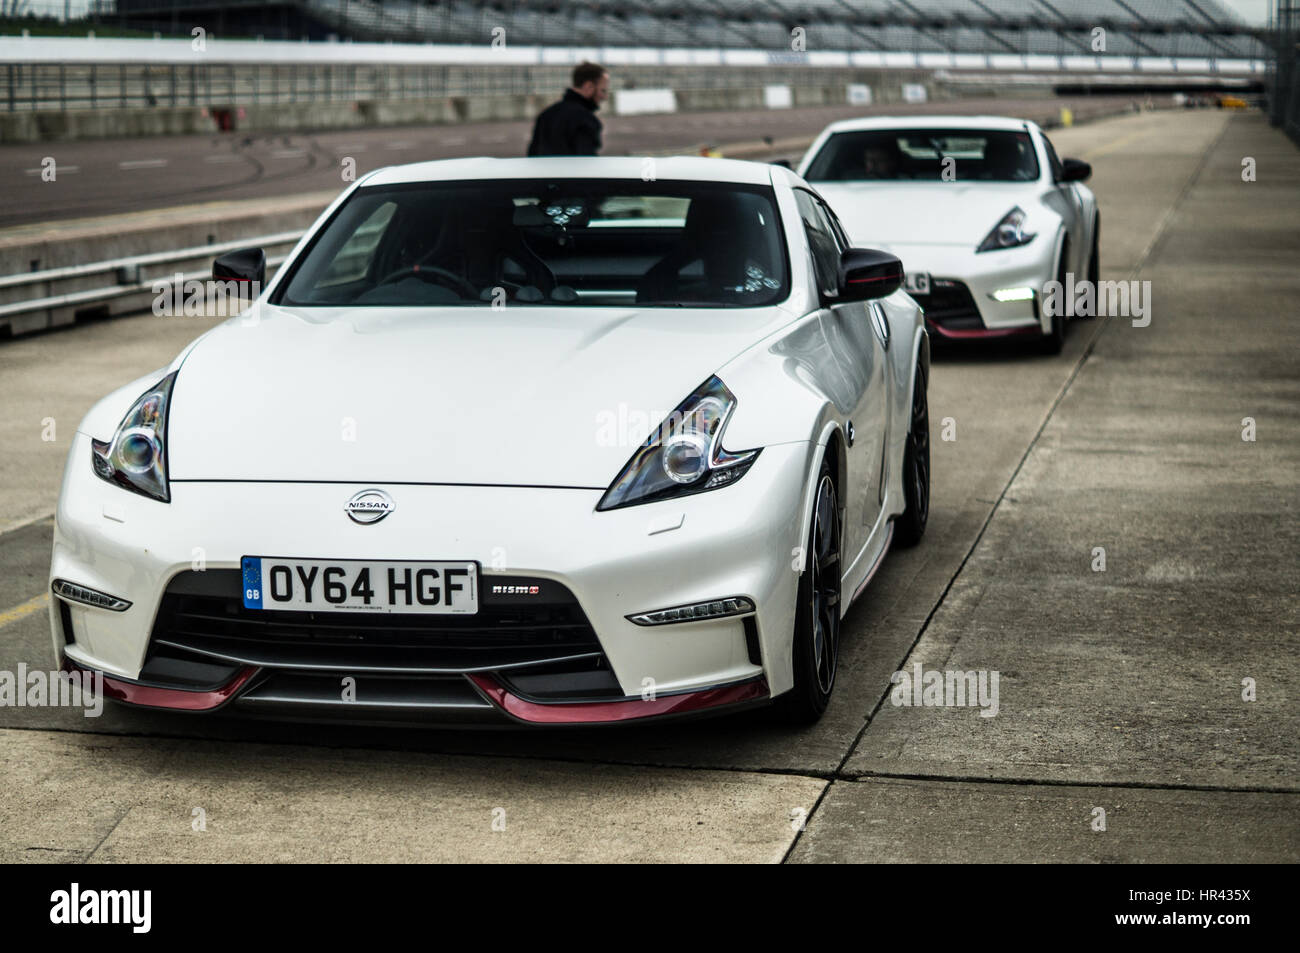 Good Two White Nissan 370z Nismo On A Race Track, In Pit Lane.   Stock